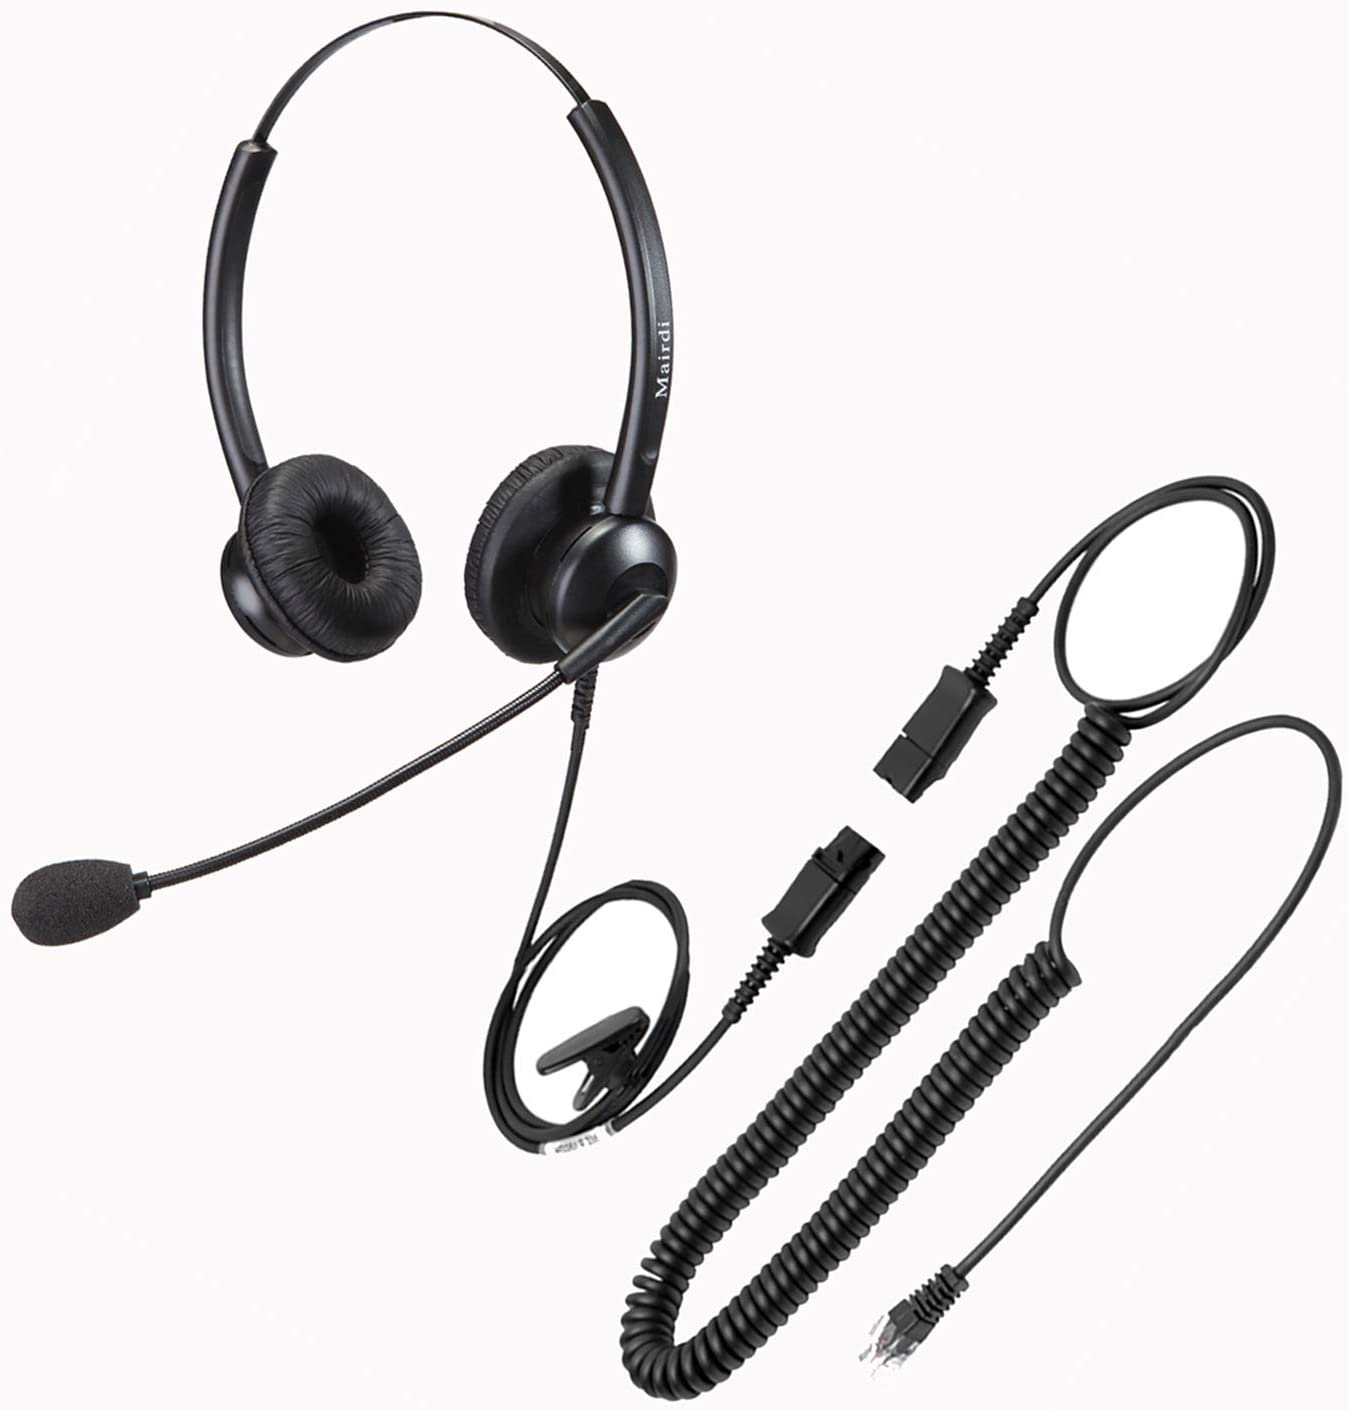 MAIRDI Telephone Headset for Cisco Phone, Binaural Office Headset with Noise Cancelling Microphone RJ9 Jack for Cisco 7942 7971 8841 8845 8851 8861 8945 8961